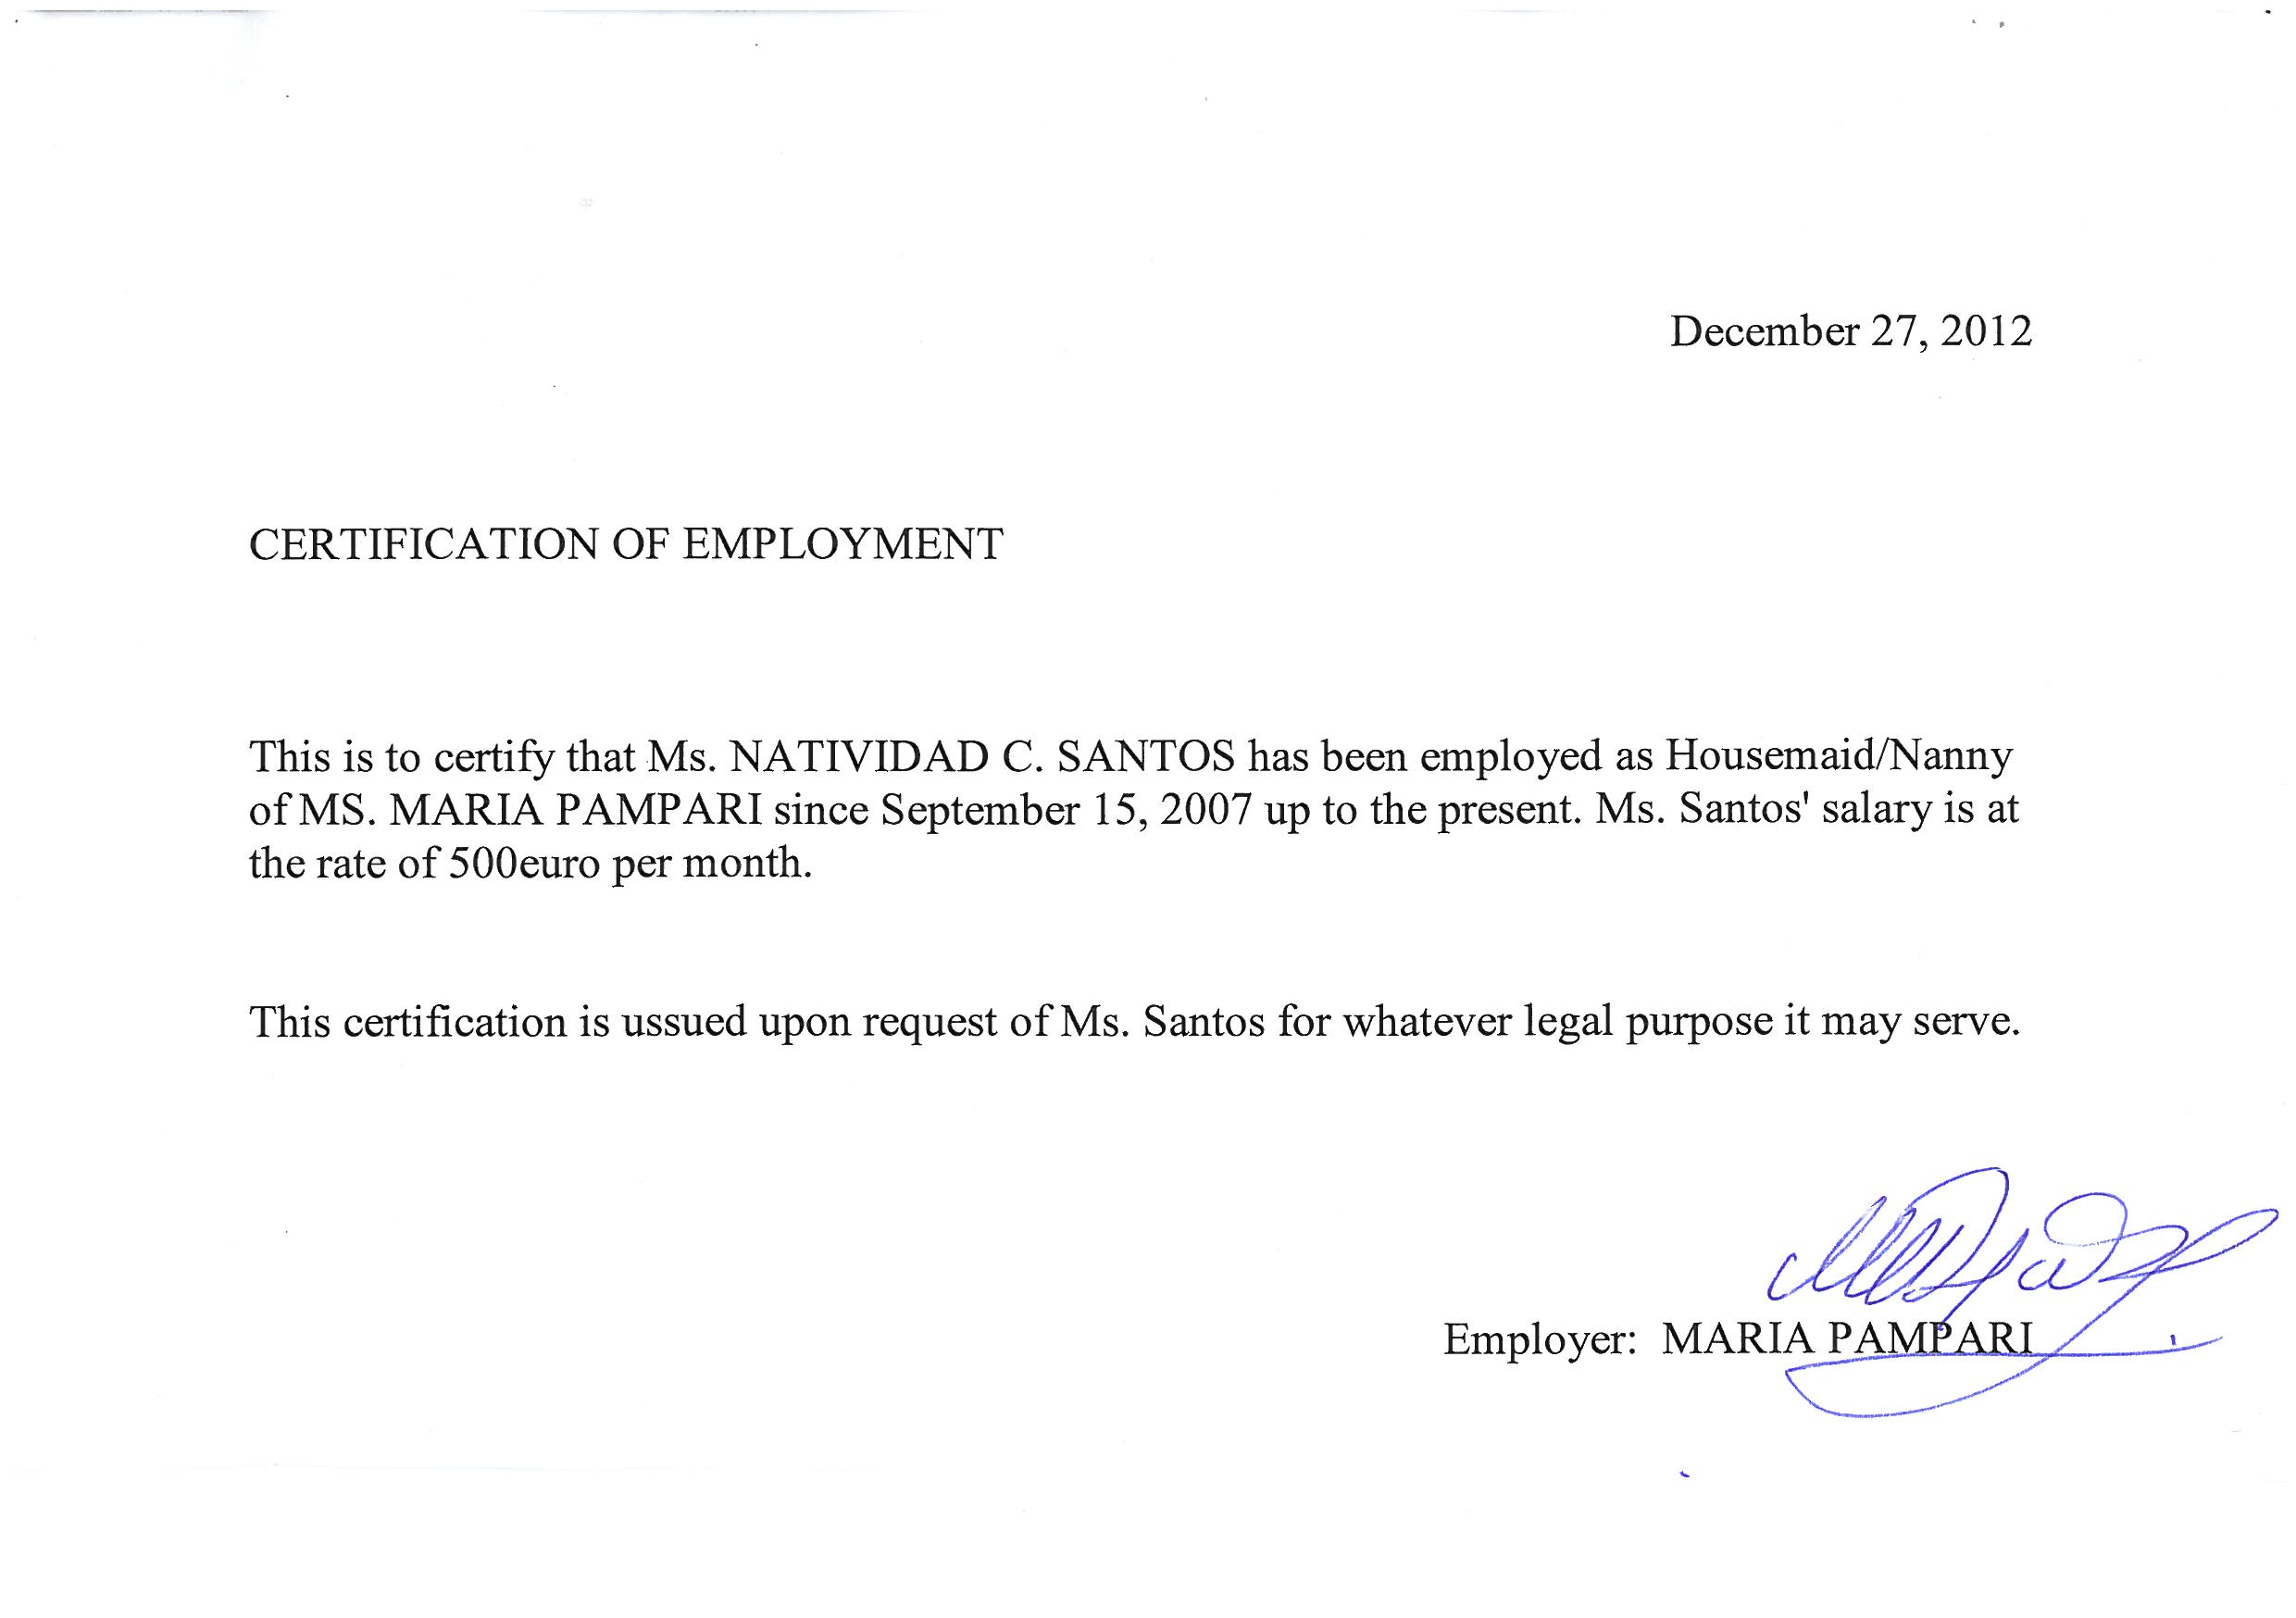 Sle of certification of employment 28 images salary certificate sle employment certification letter for 28 images yadclub Images